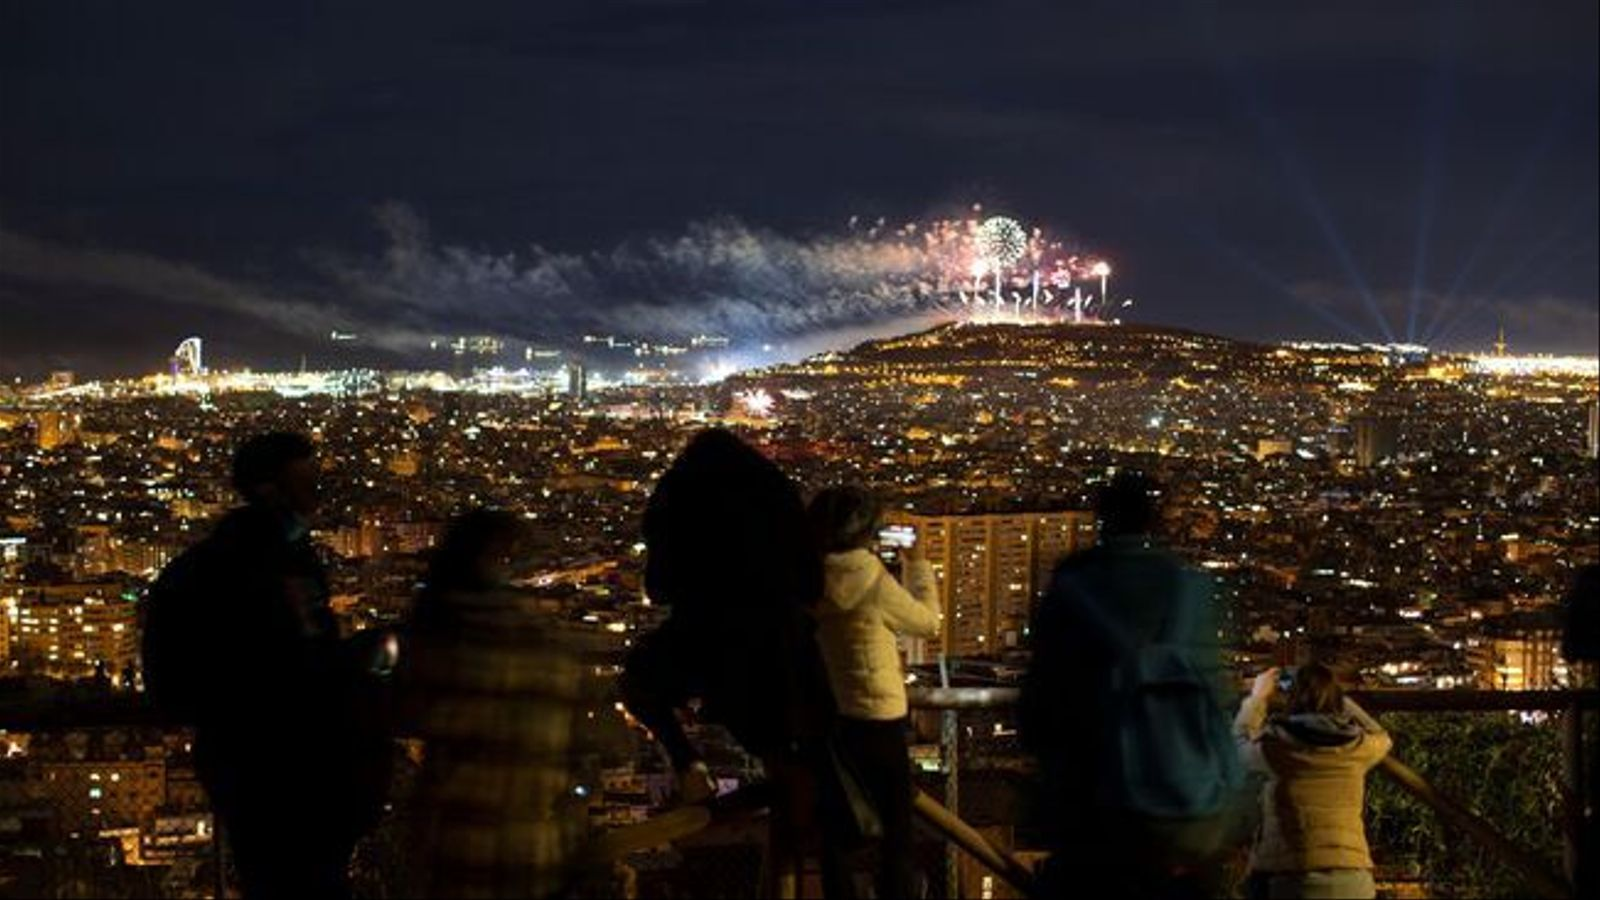 Several people watching the New Year's Eve fireworks in Barcelona